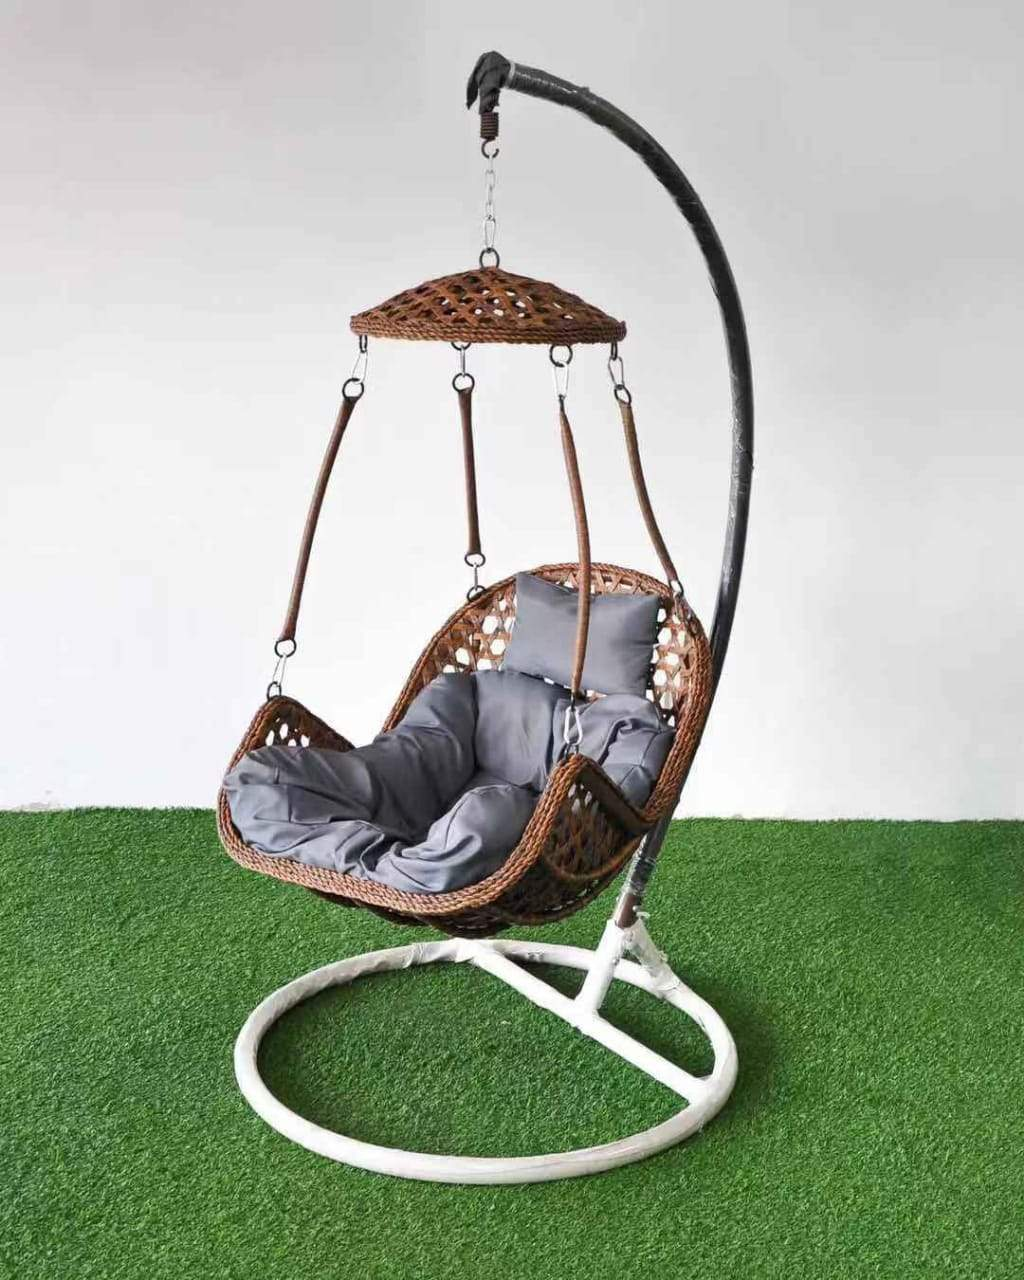 Hanging Chair Outdoor (Princess Kylie) - Greatest deals